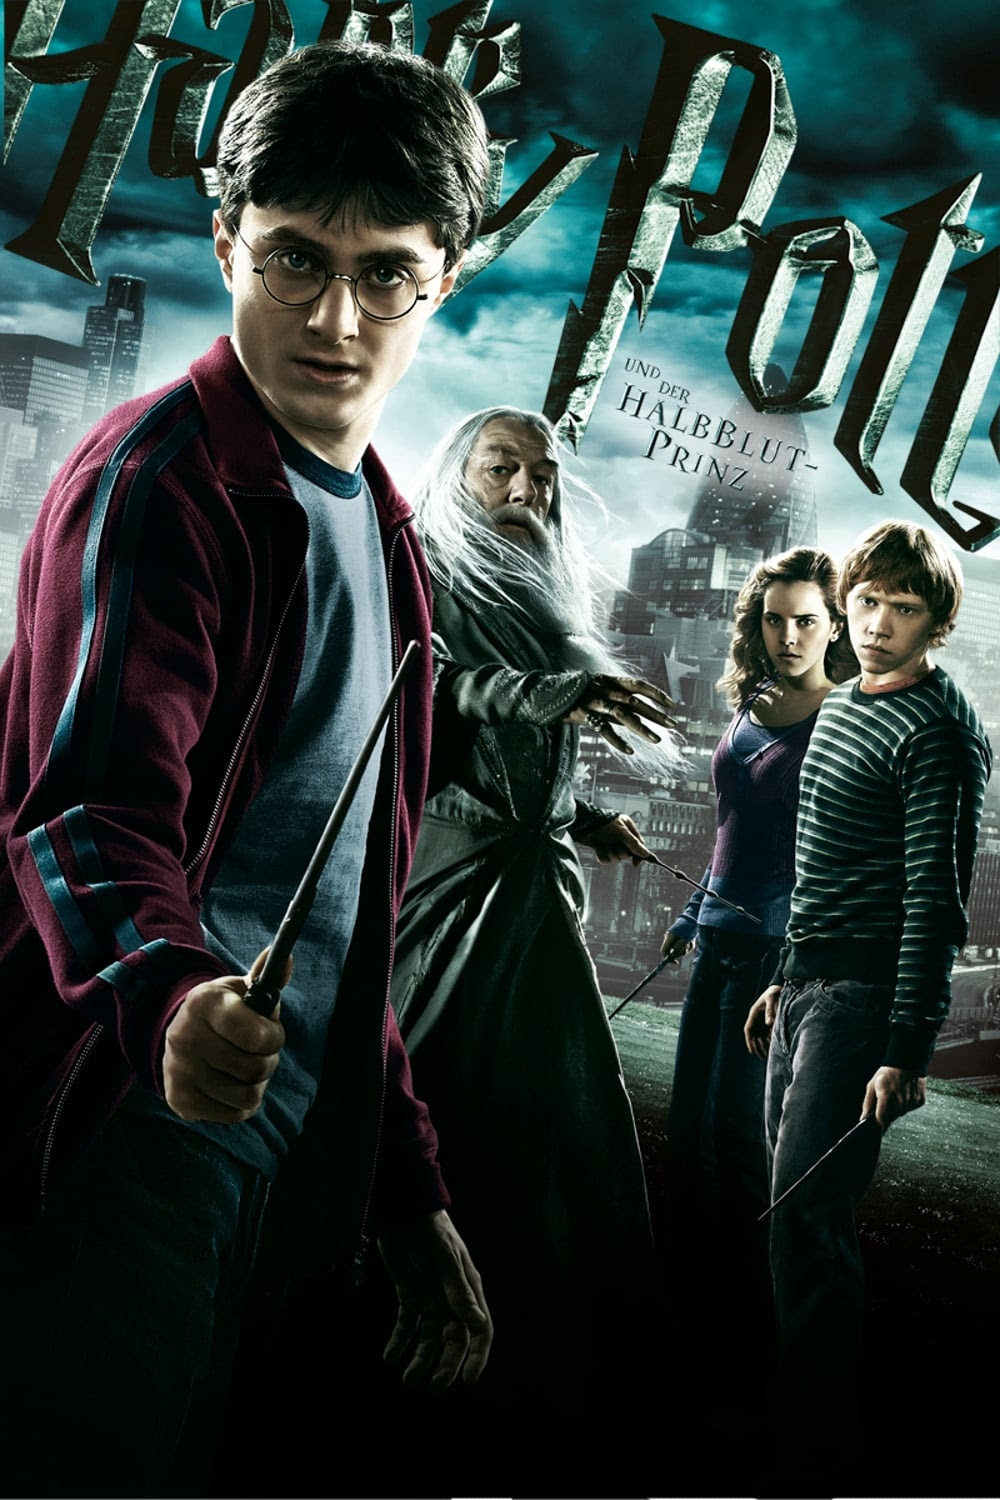 harry potter filme reihenfolge stream